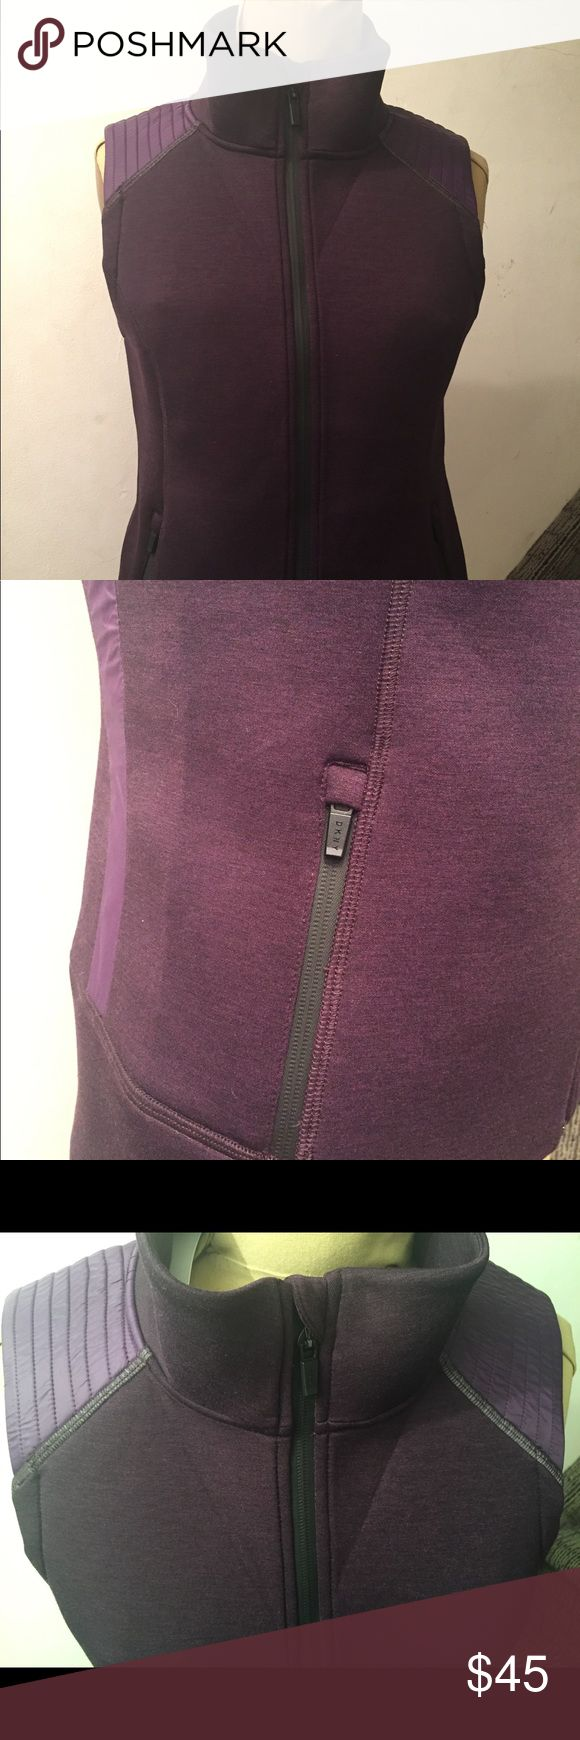 Purple Vest Premium down purple vest.   Made of scuba material. Perfect for the fall. Dkny Jackets & Coats Vests